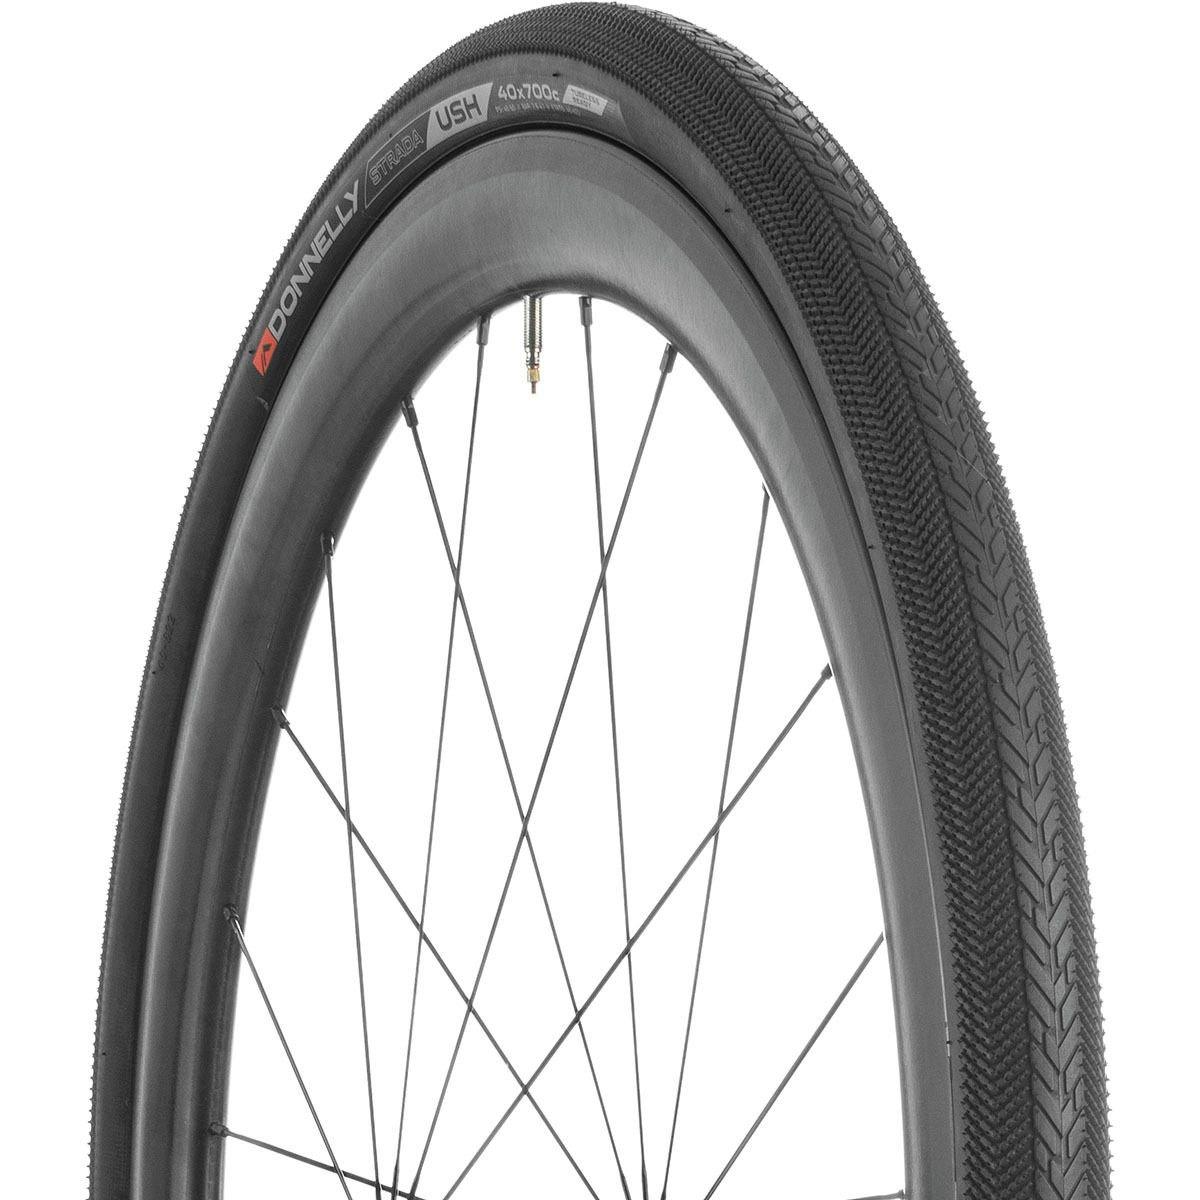 Donnelly Strada USH Tire - Tubeless Black, 700 x 40mm by Donnelly